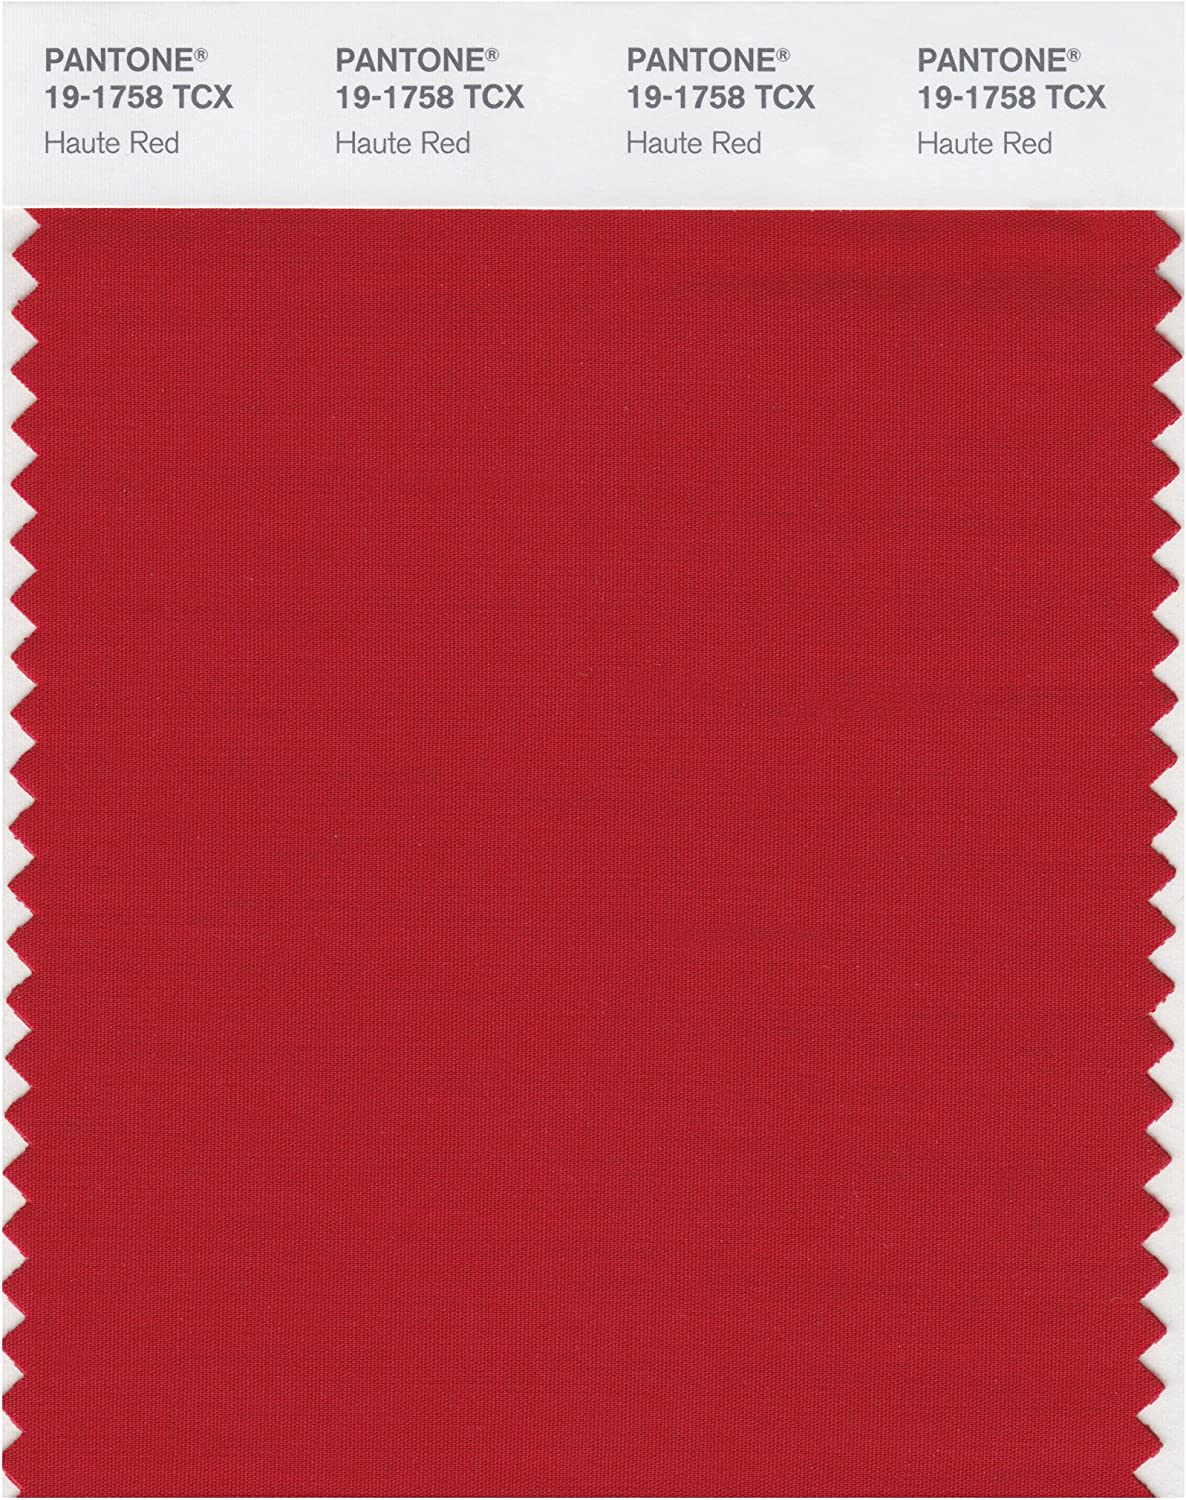 Pantone 19-1758 TCX Smart Color Swatch Card, Haute Red